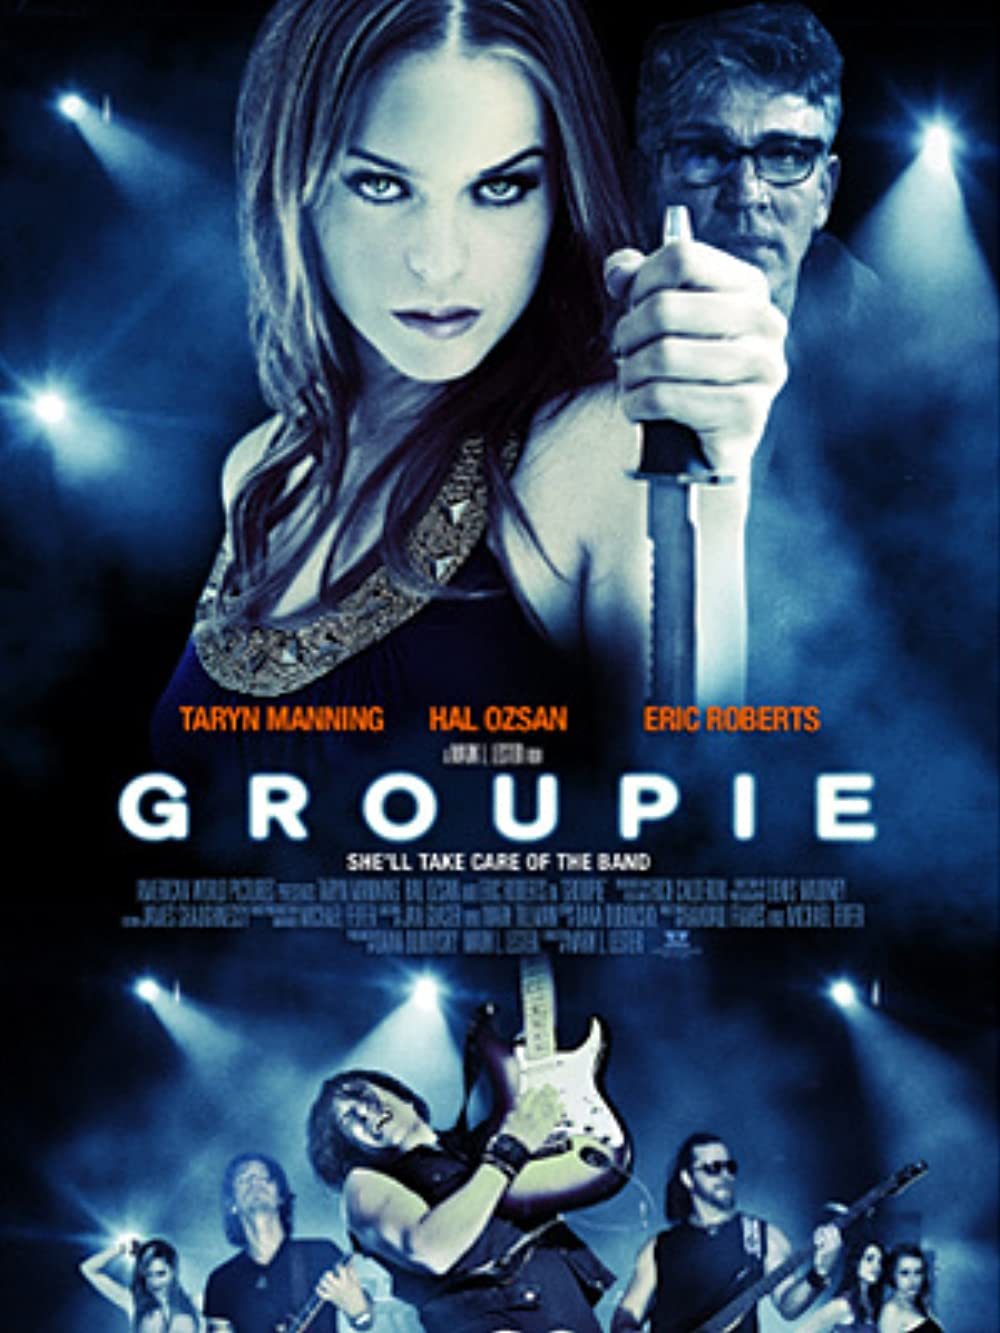 18+ Groupie 2010 Hindi Dual Audio 480p UNCUT BluRay 300MB x264 AAC